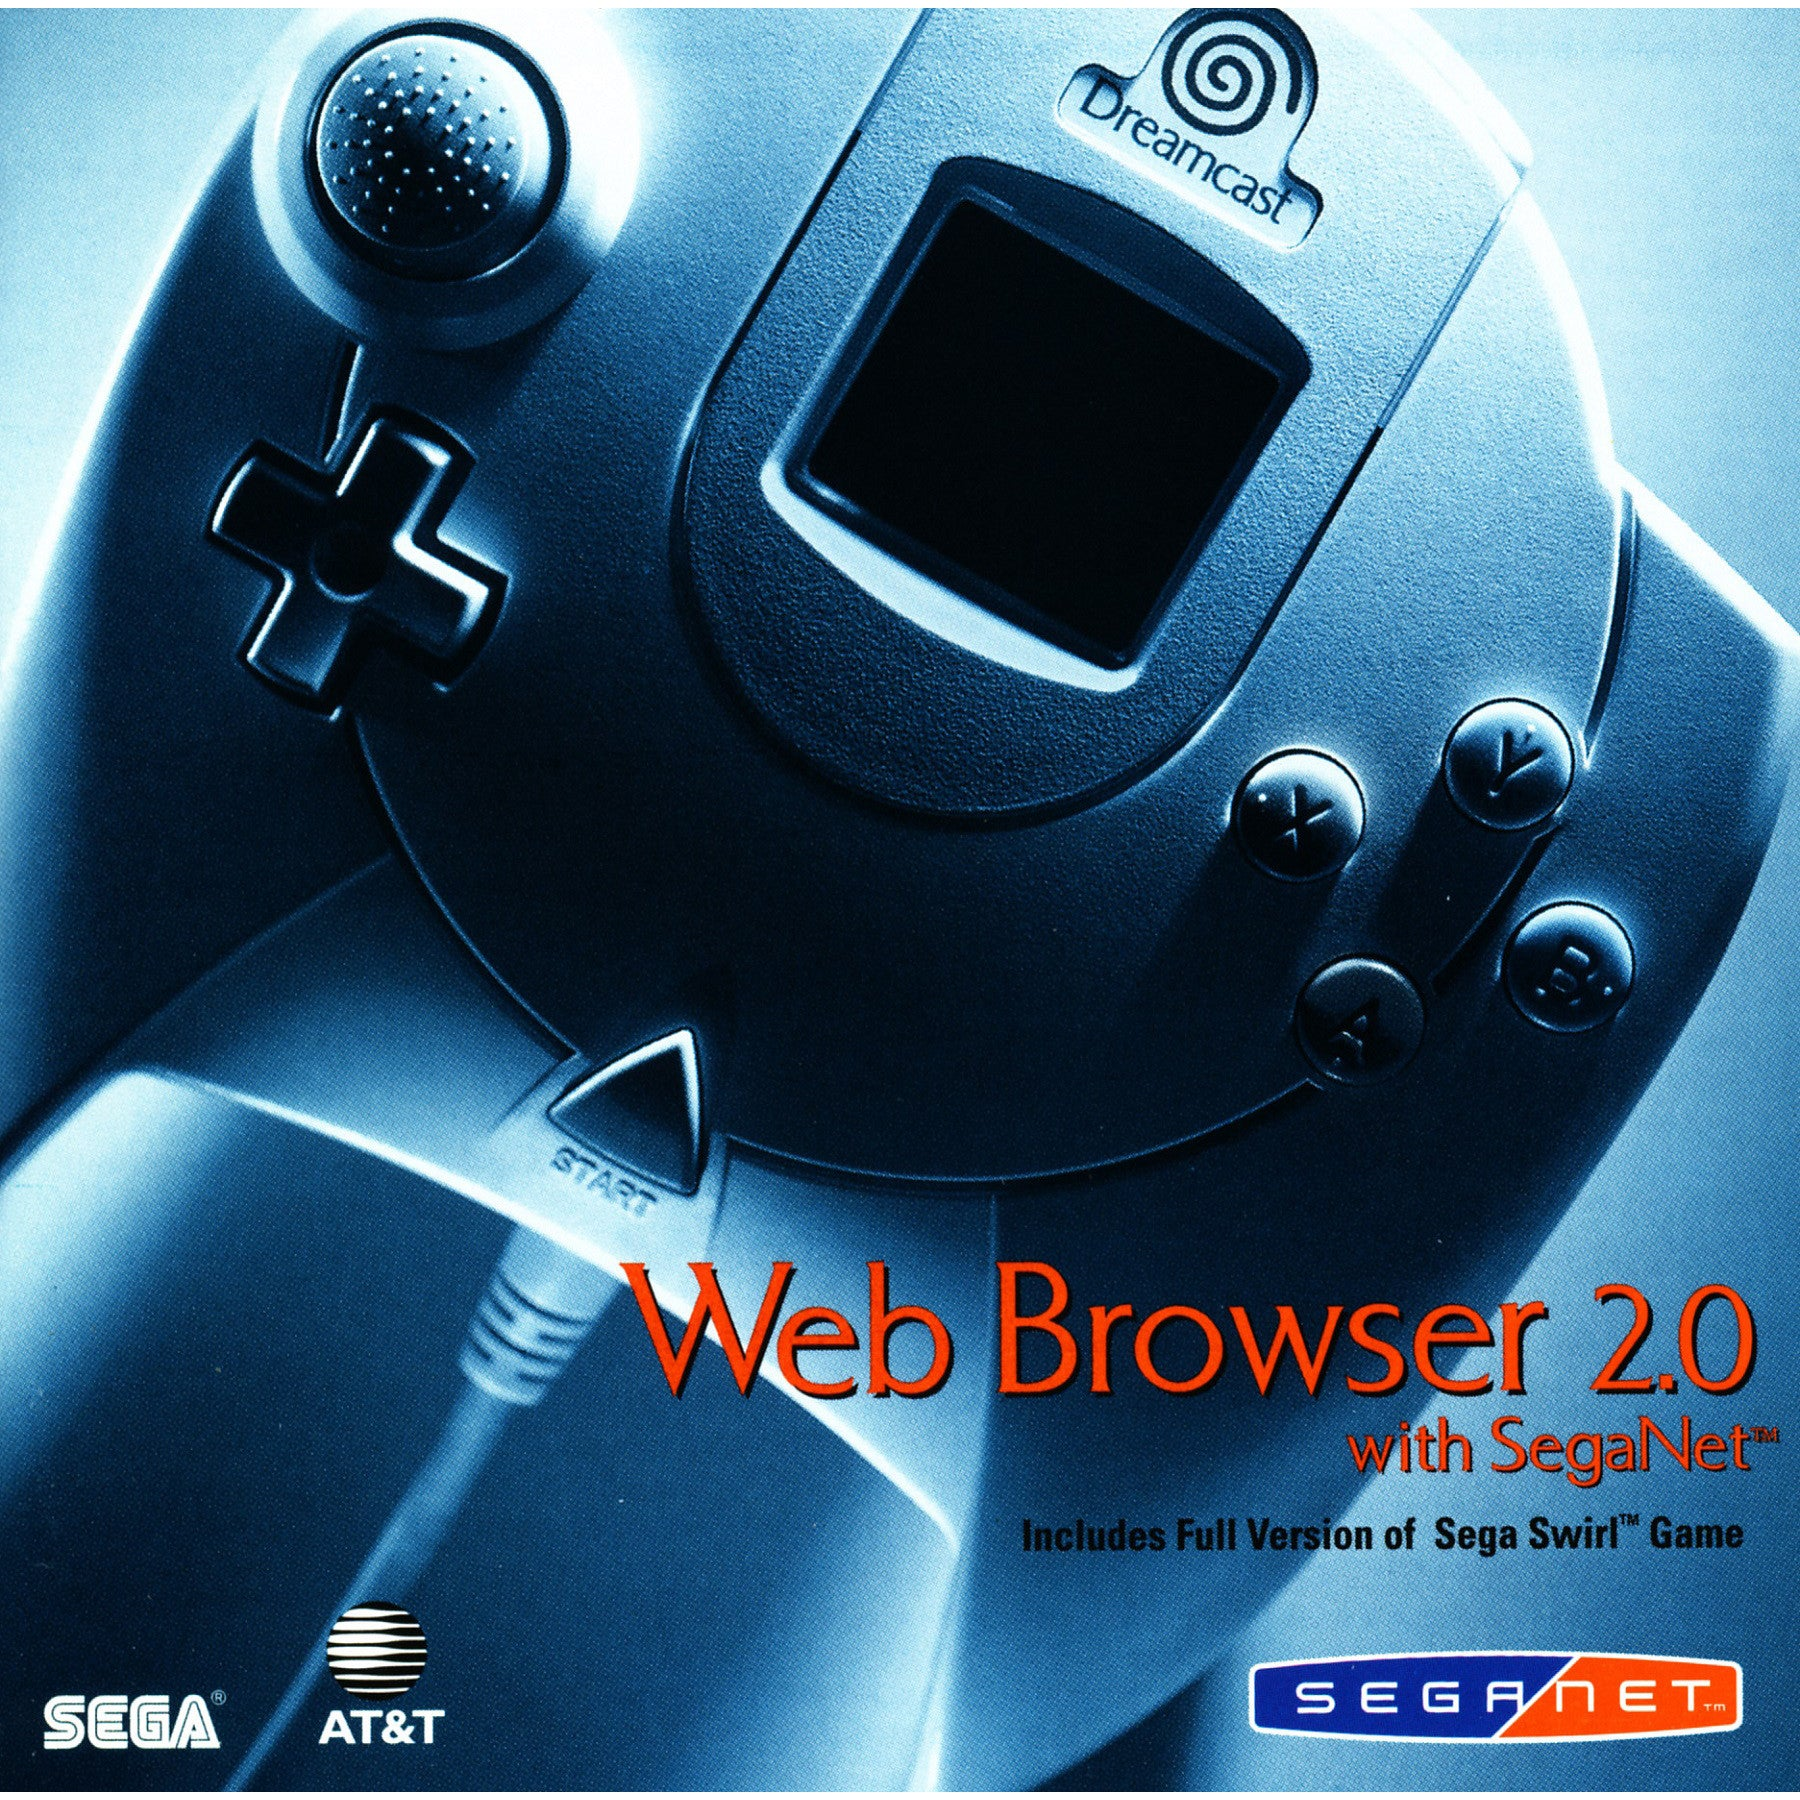 Web Browser 2.0 with Sega Swirl - Dreamcast Game - Complete